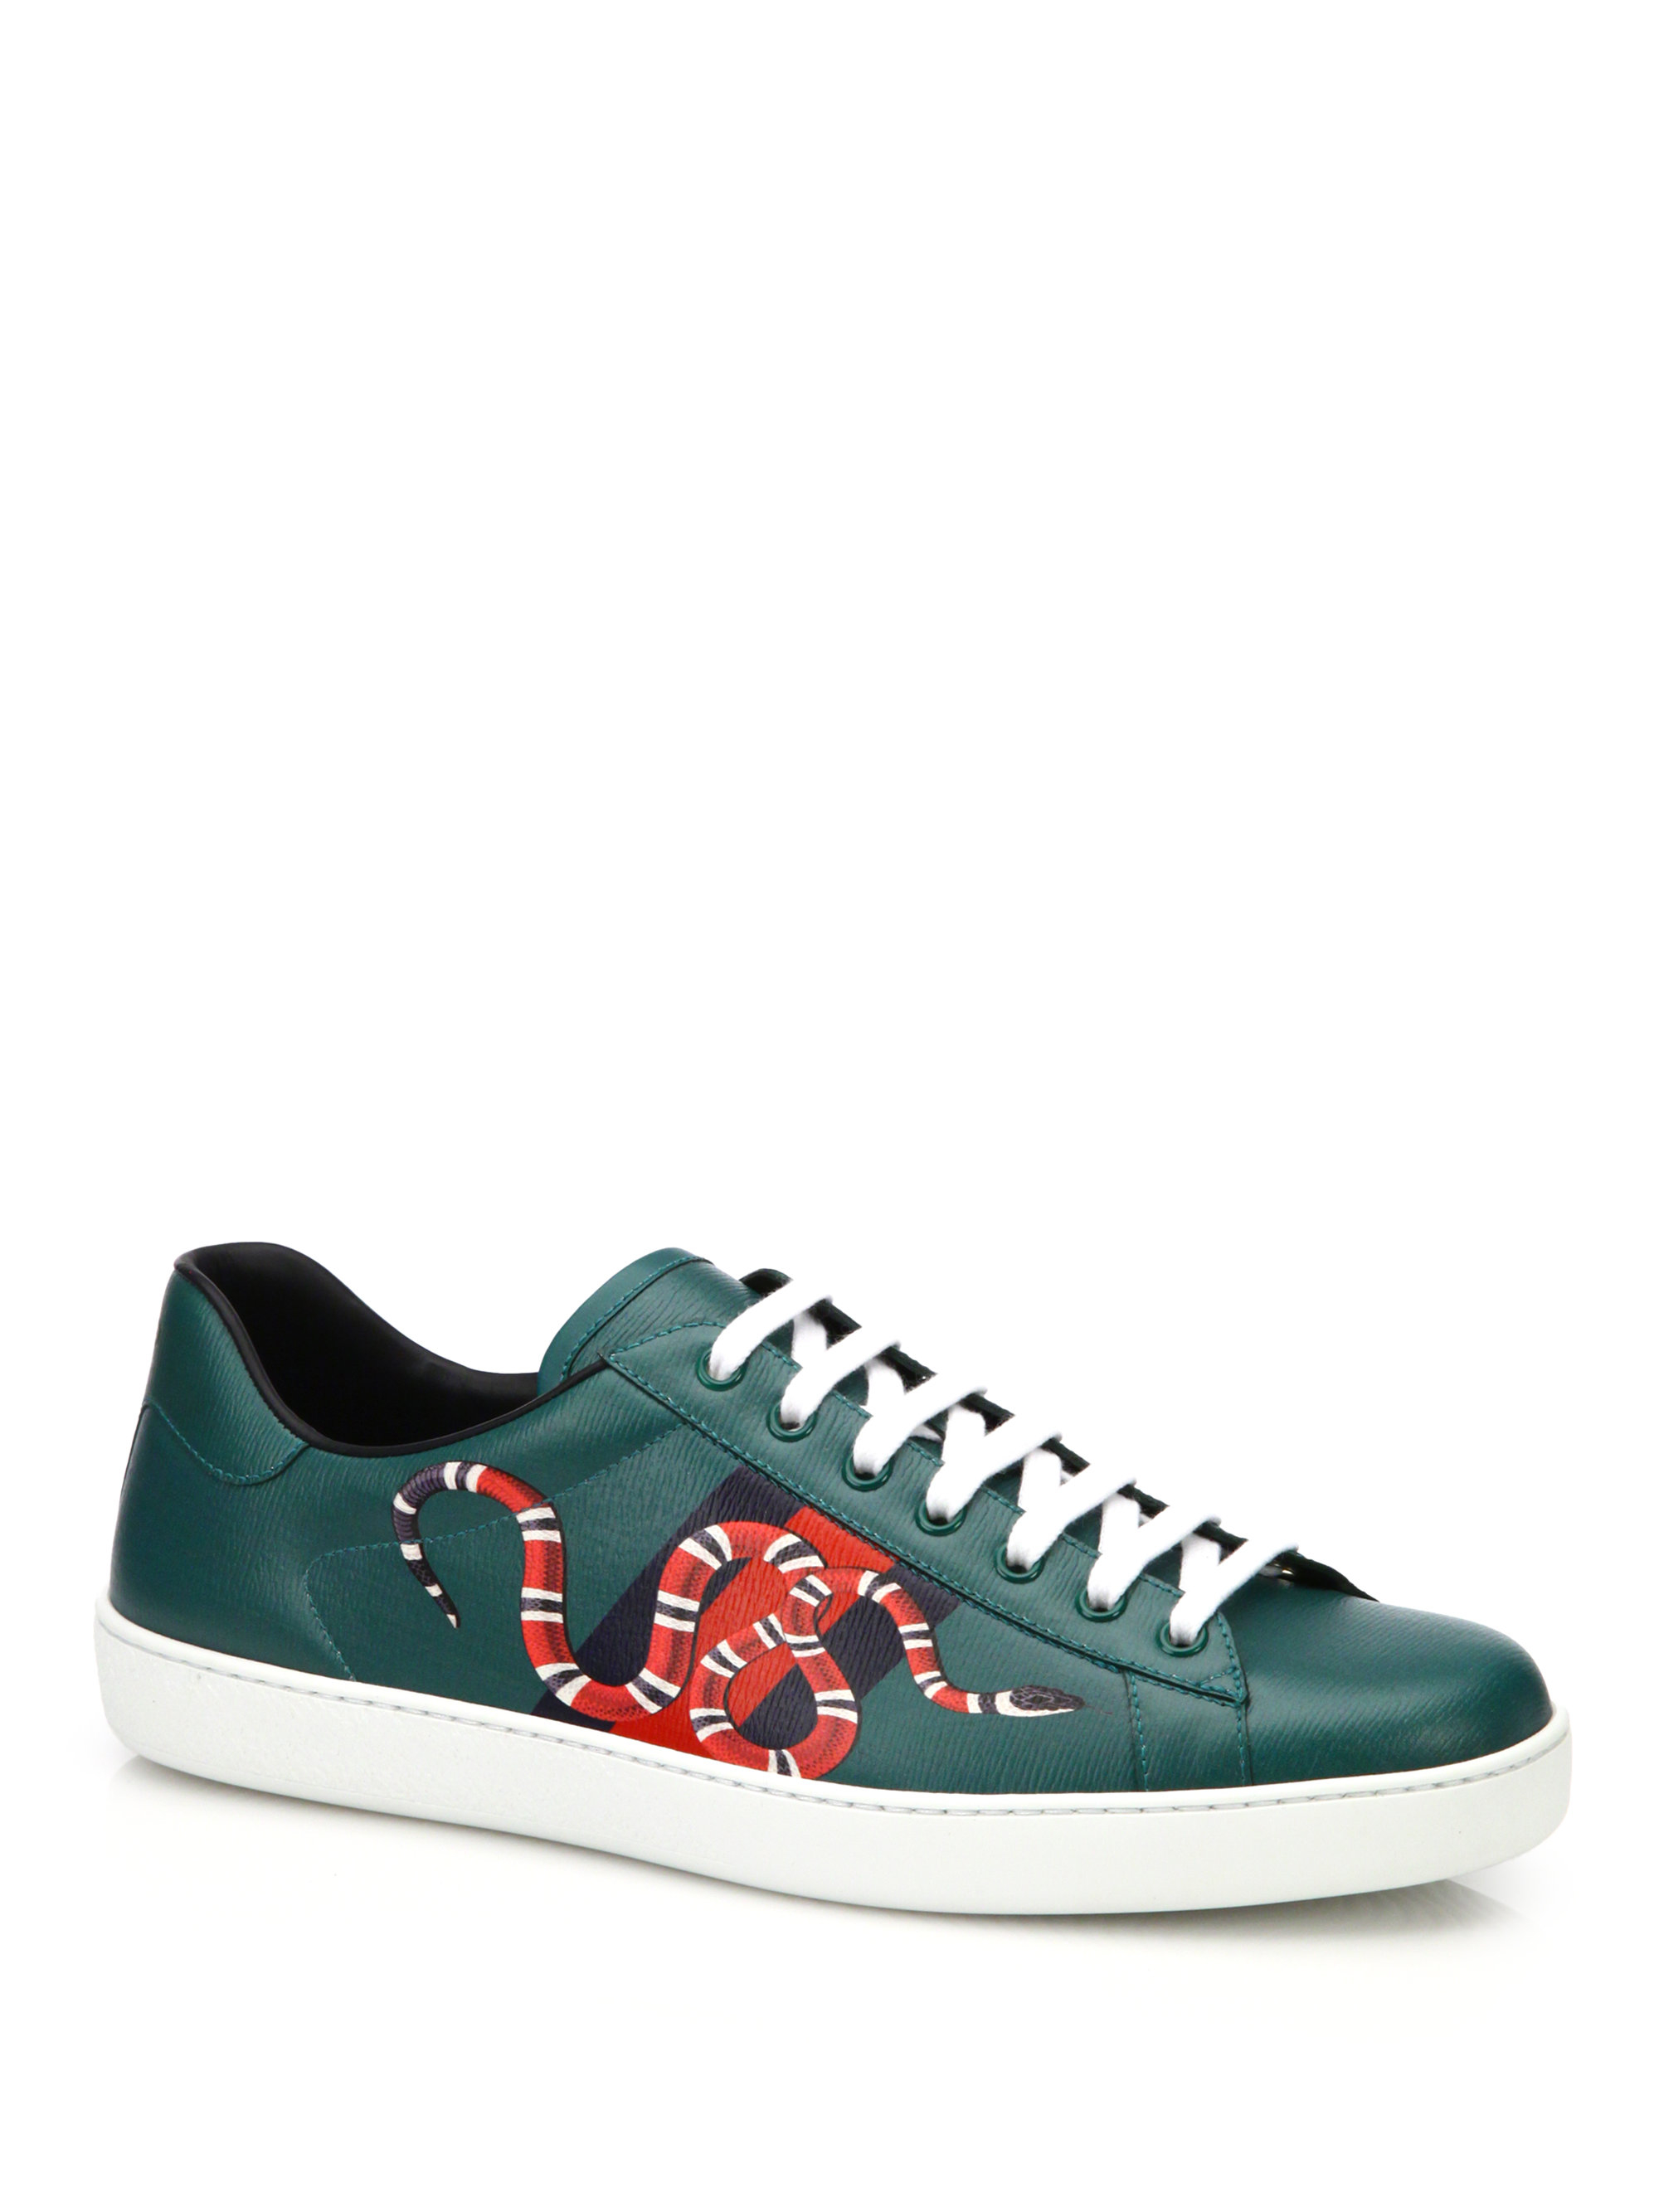 411f61efa Gucci New Ace Snake Print Leather Low-top Sneakers in Green - Lyst